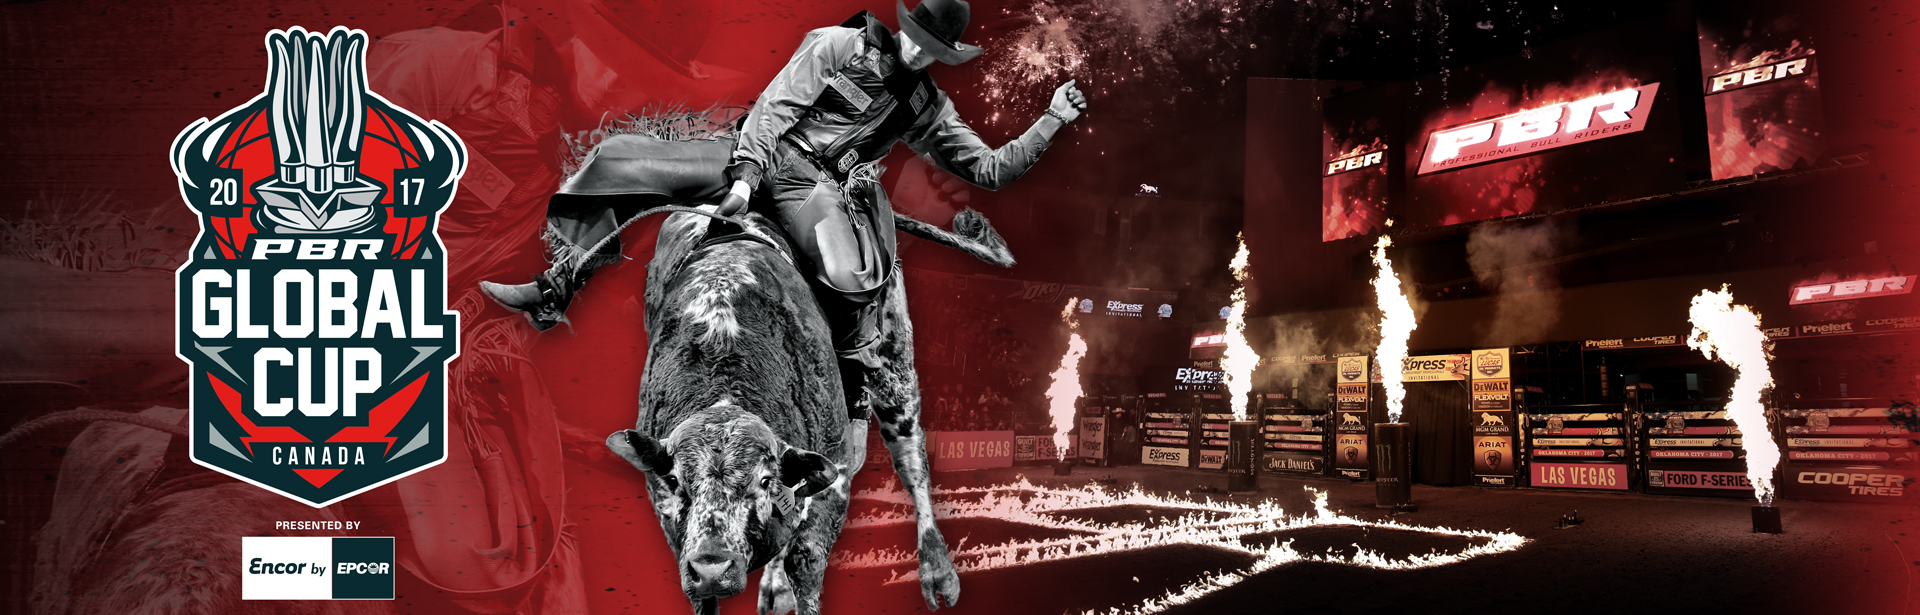 PBR | Rogers Place